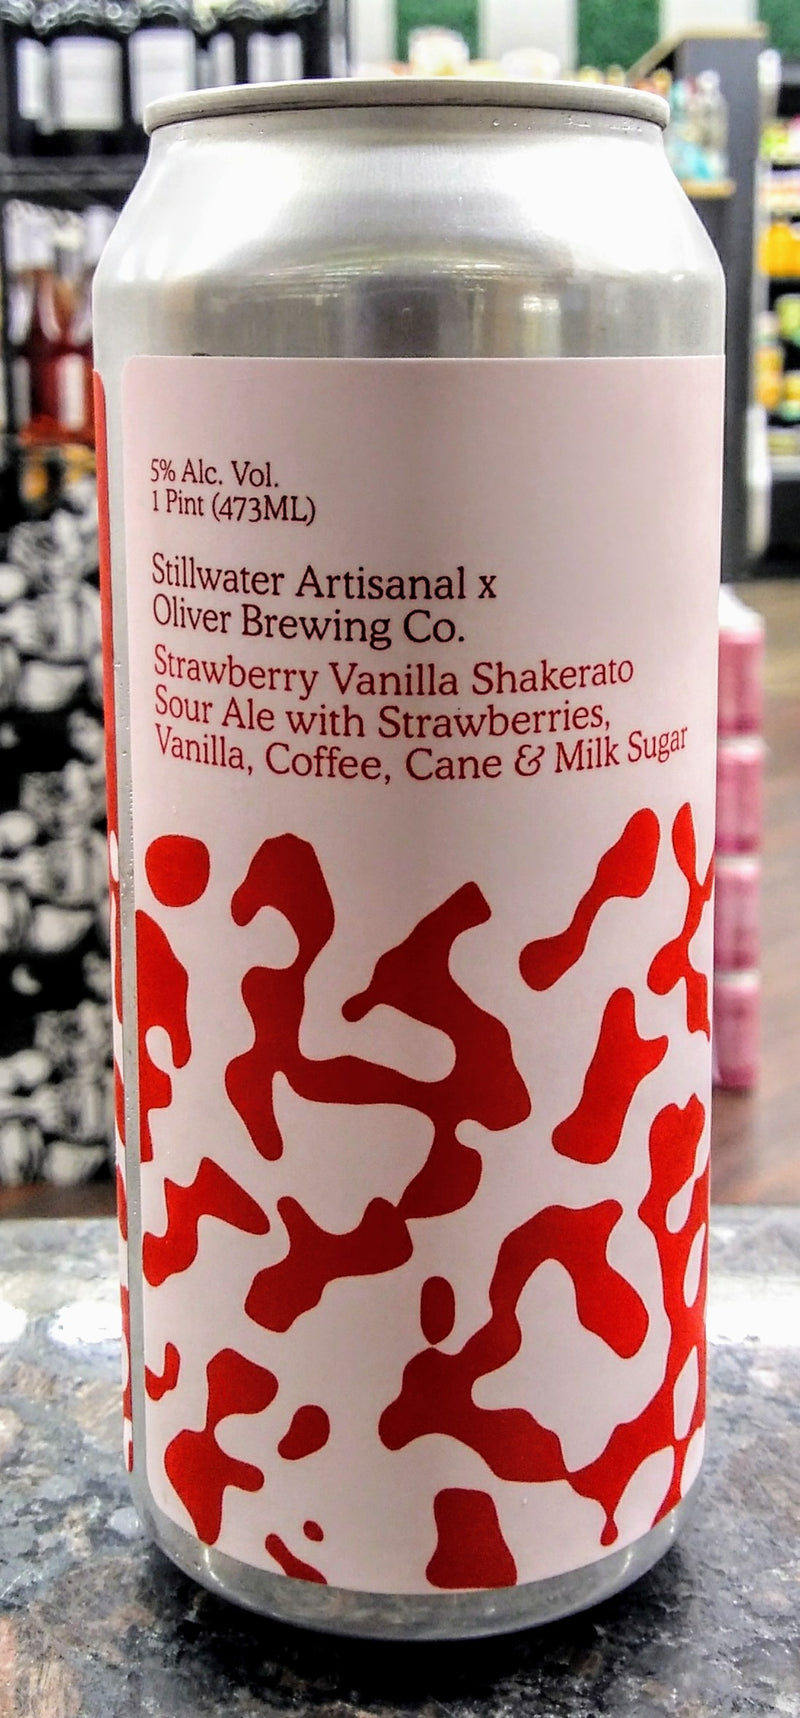 STILLWATER ARTISANAL STRAWBERRY VANILLA SHAKERATO SOUR ALE 16oz can